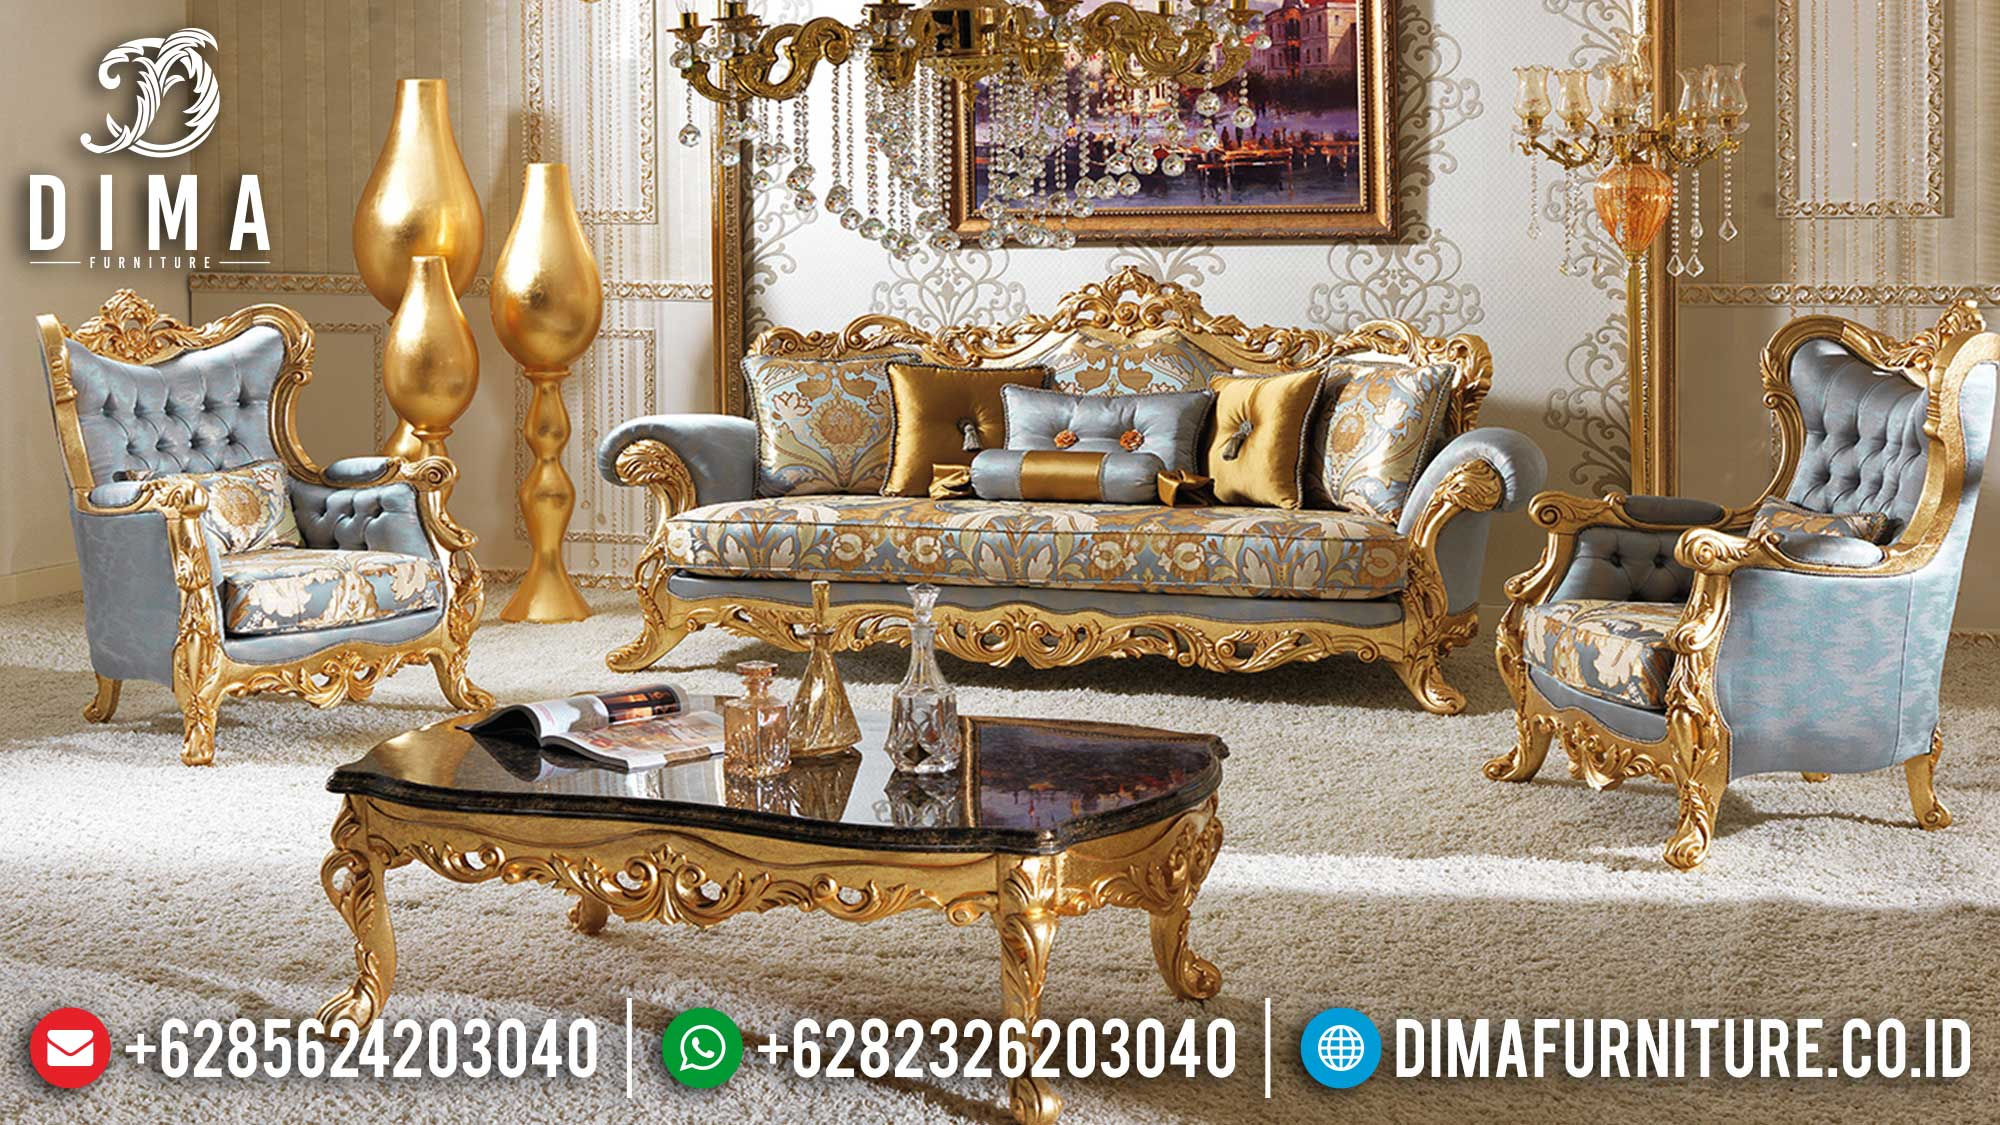 Set Sofa Tamu Mewah Ukir Golden Shine Color Luxurious Furniture Jepara Ttj-1528